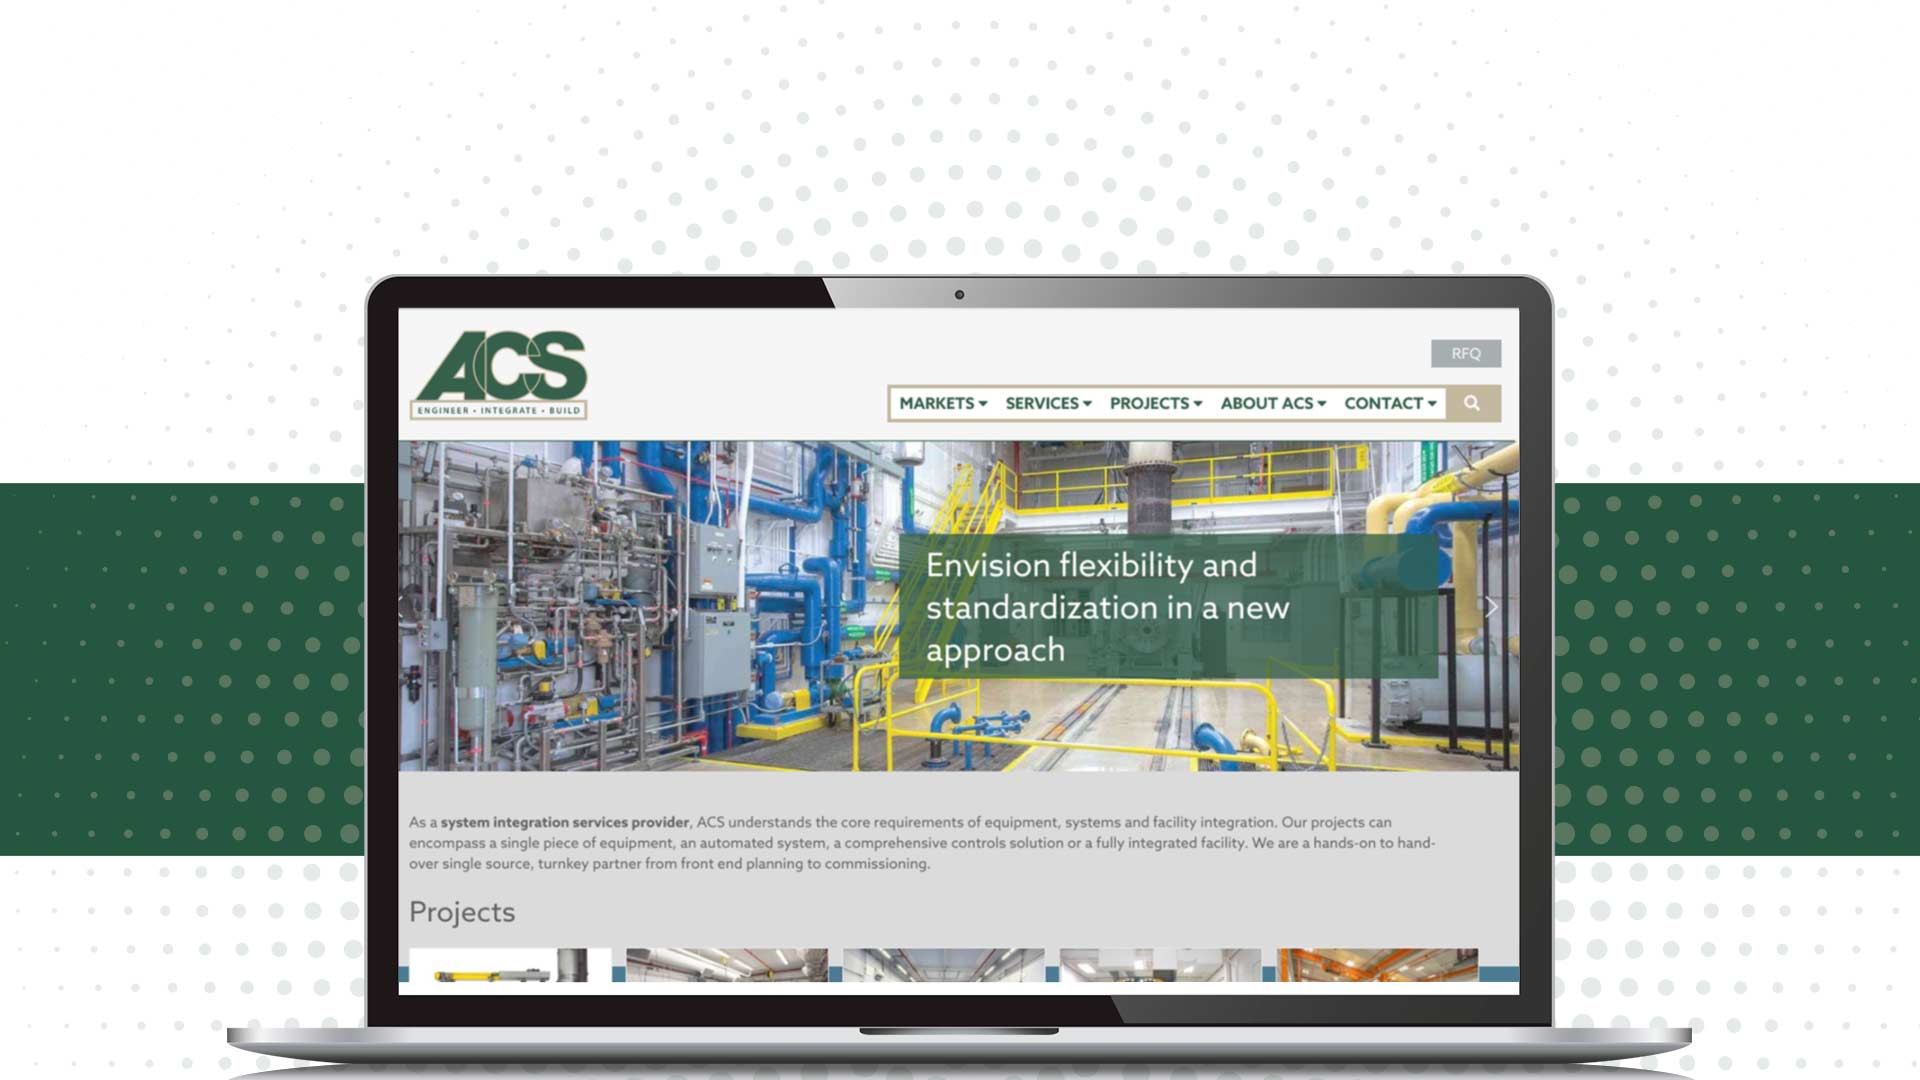 ACS has a new website courtesy of NAVEO's brand development strategy.